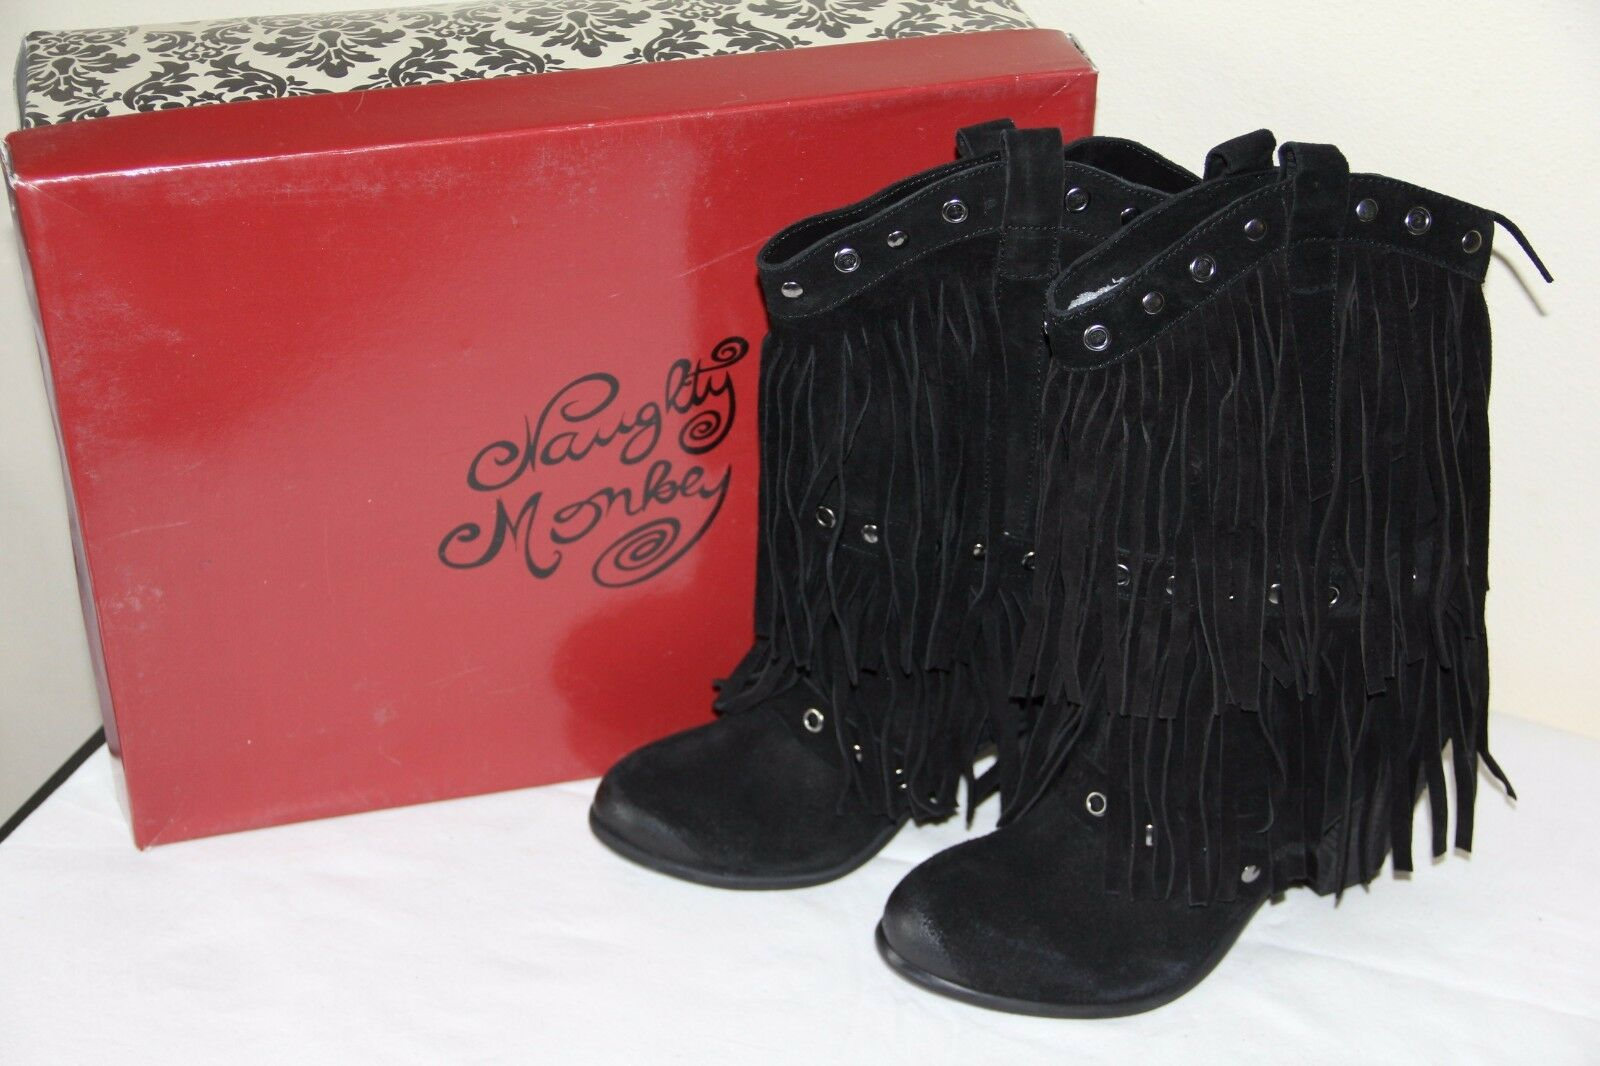 NEW Naughty Naughty Naughty Monkey KICKIN IT Womens Black Suede Winter High Boots Fashion shoes f32ccf